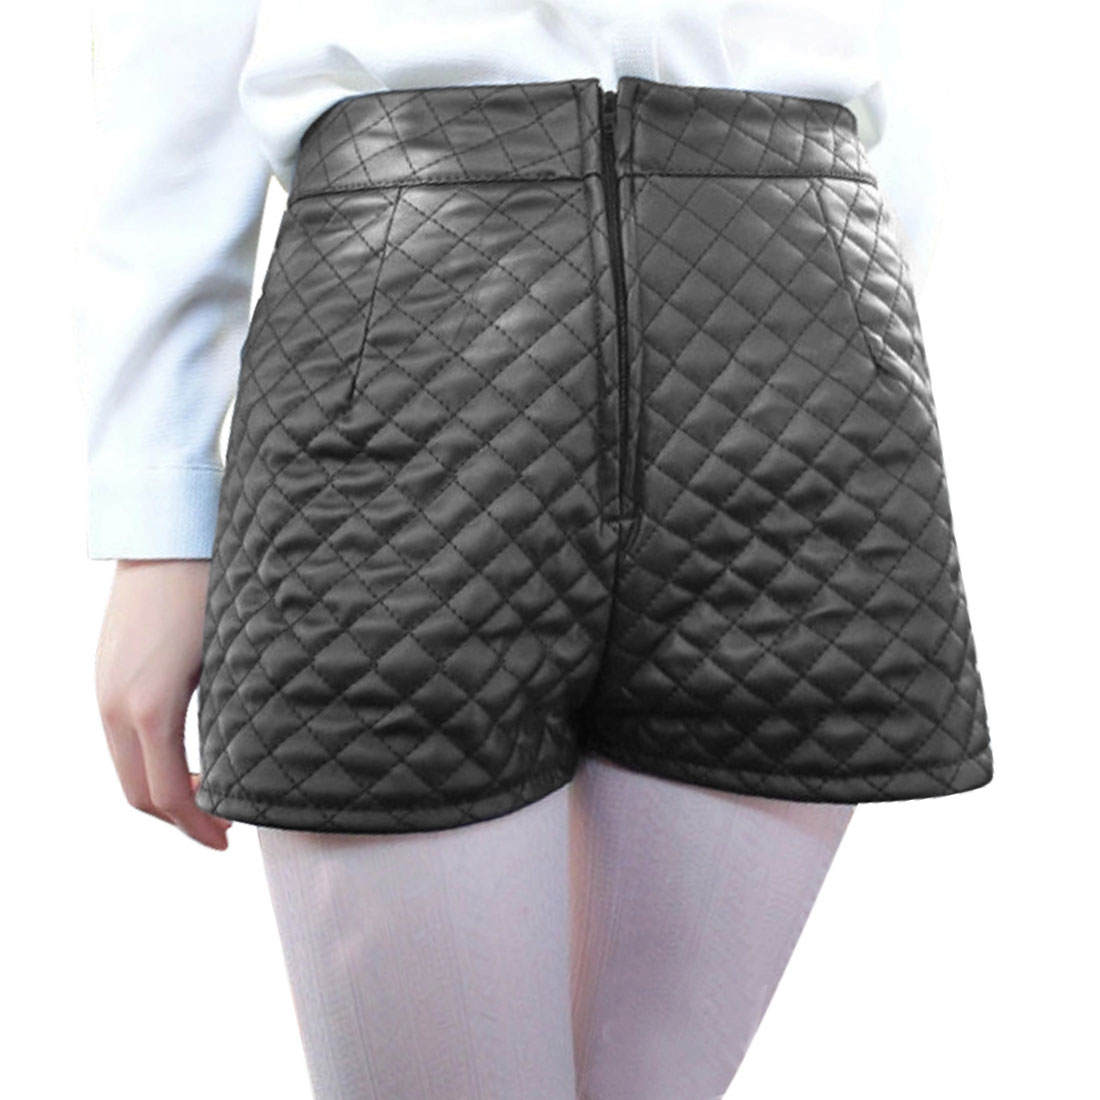 Allegra K Women's Diamond-Quilted Imitation Leather Casual Shorts (Size XS / 2)